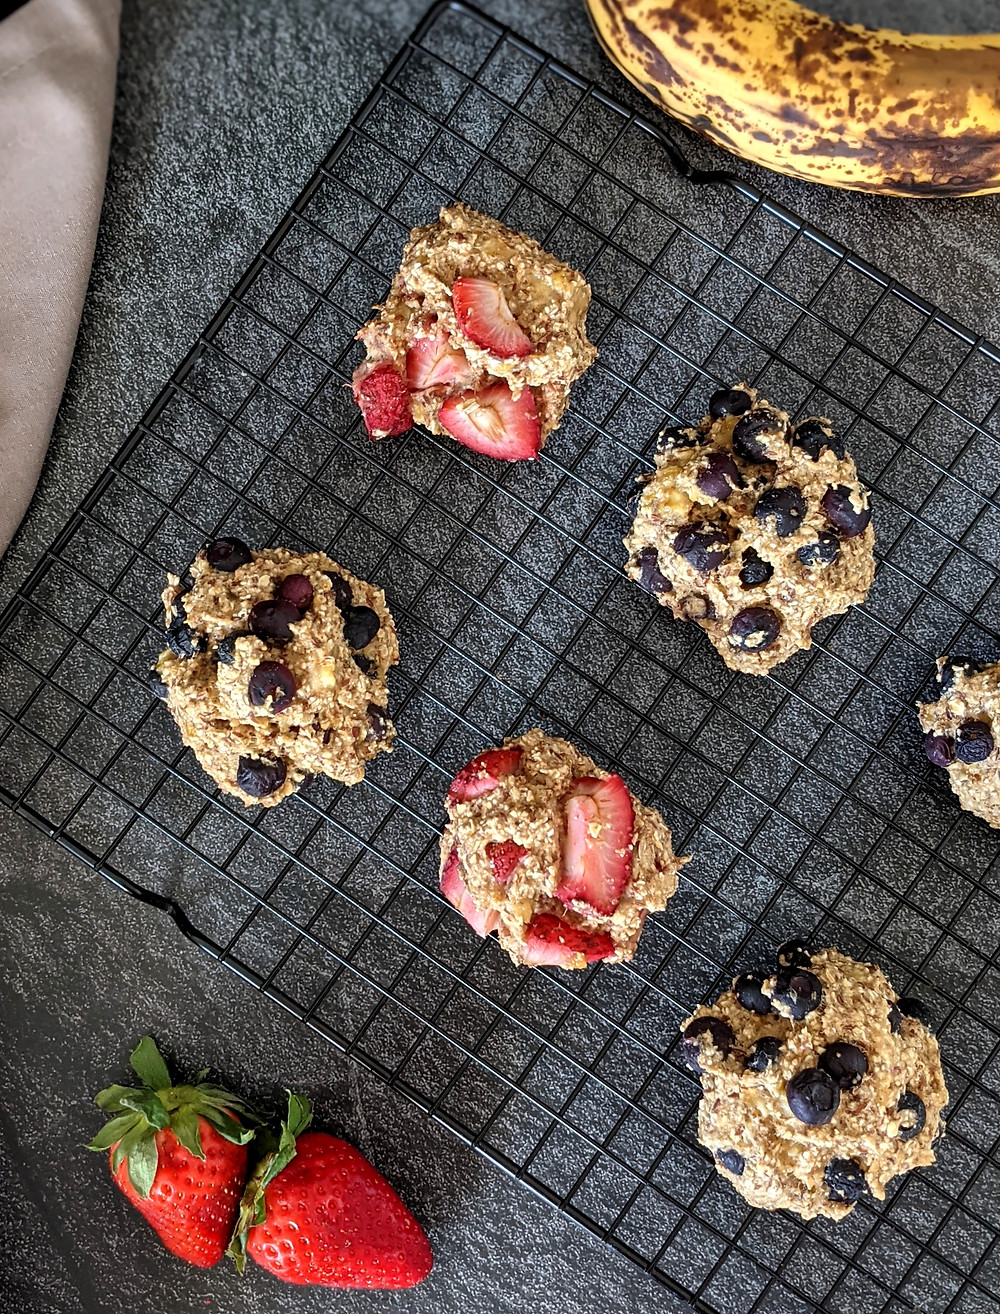 Muffin tops made with blueberries and strawberries on a cooling rack,